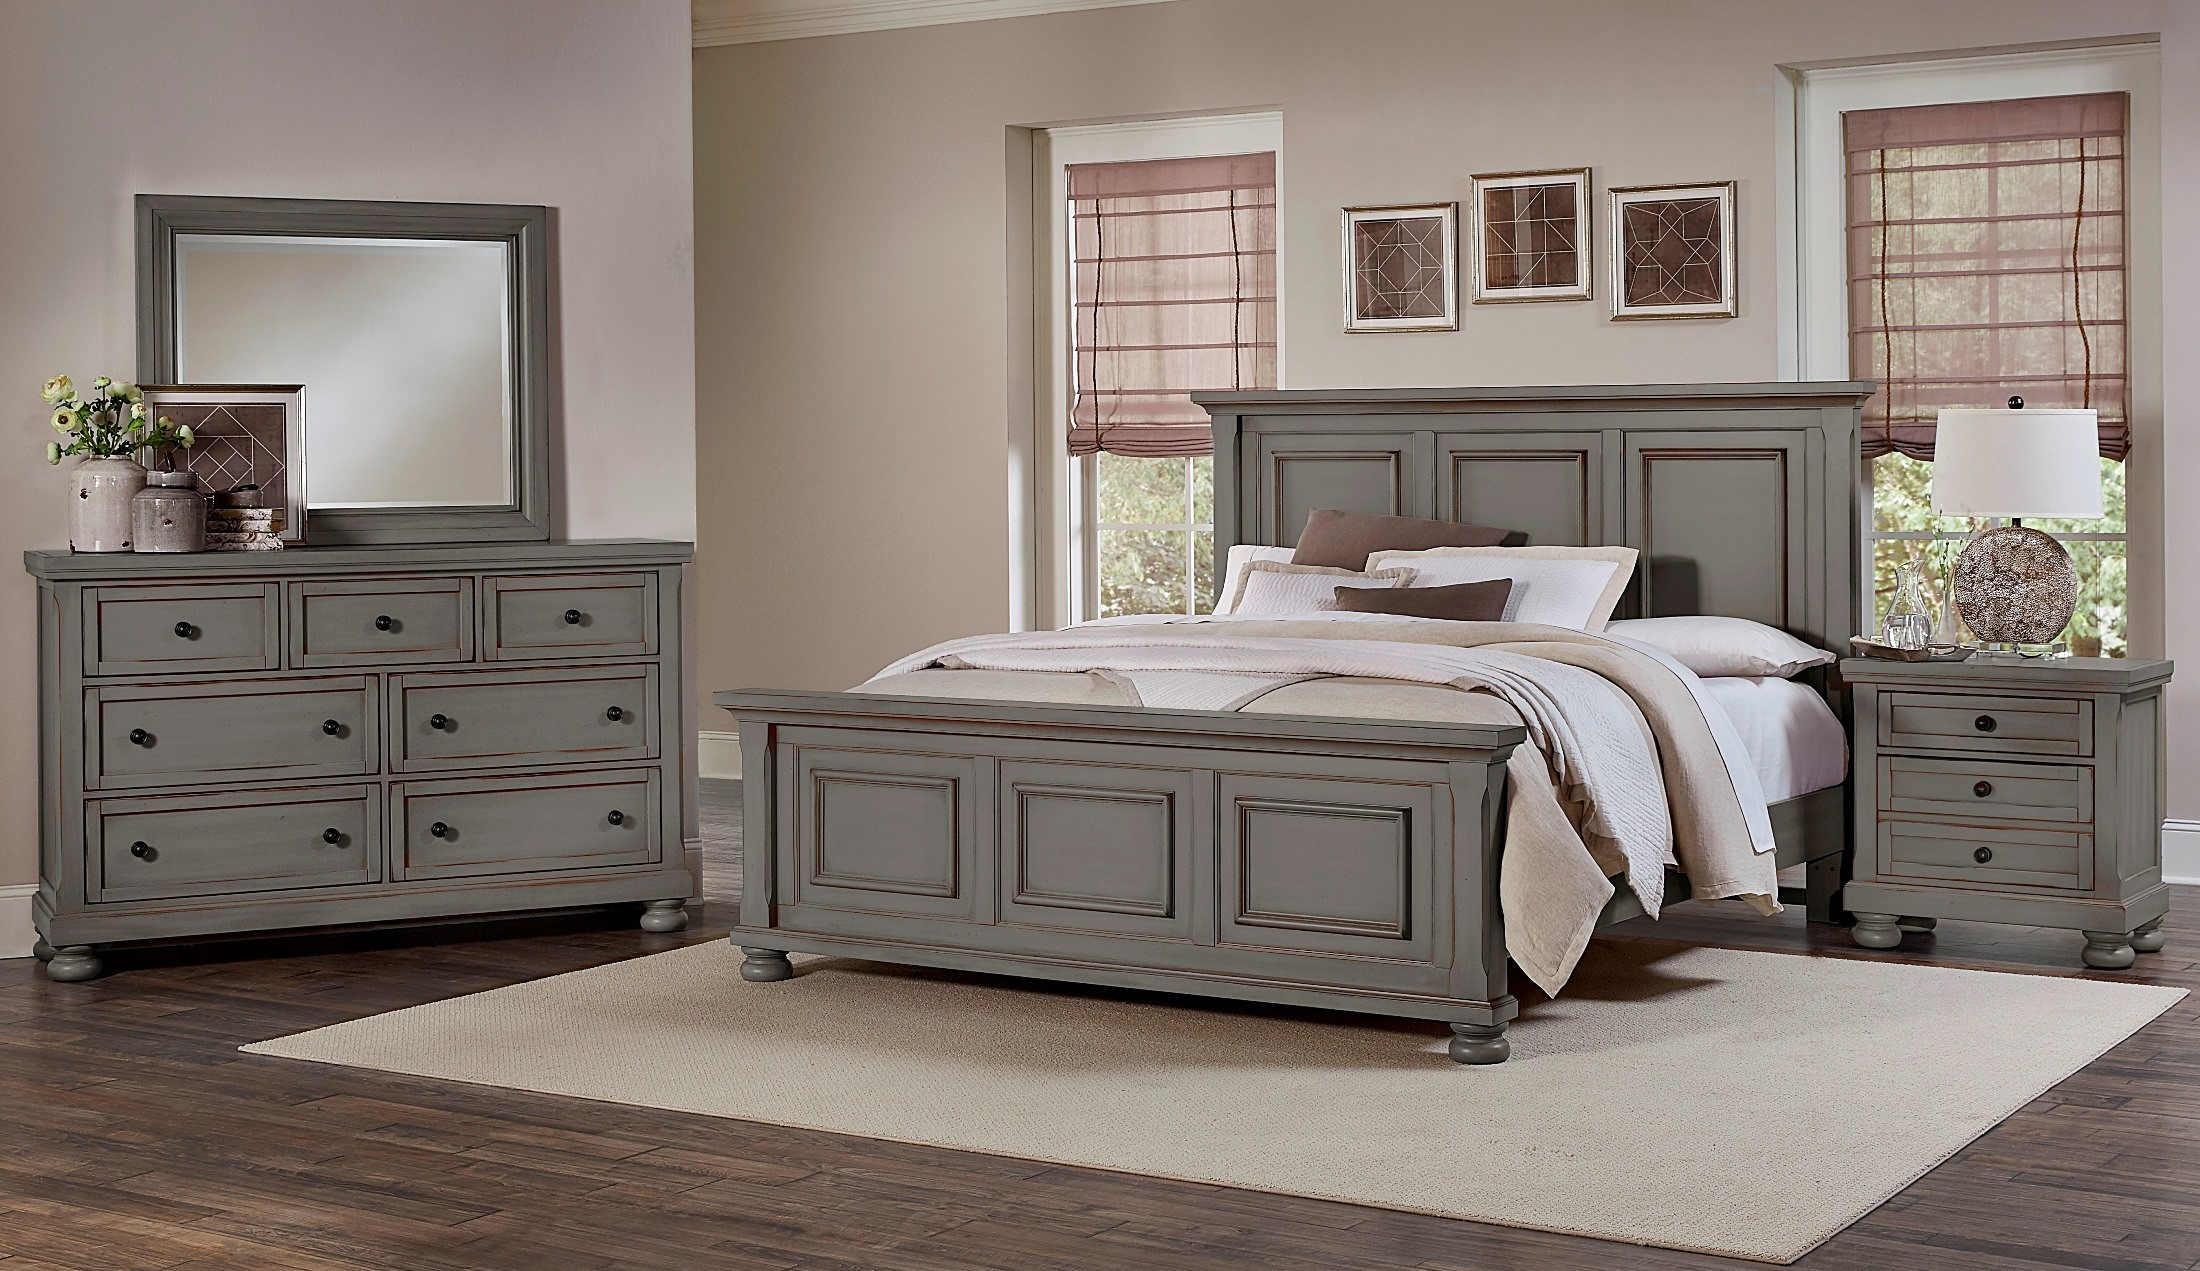 Reflections Antique Pewter Mansion Bedroom Set From